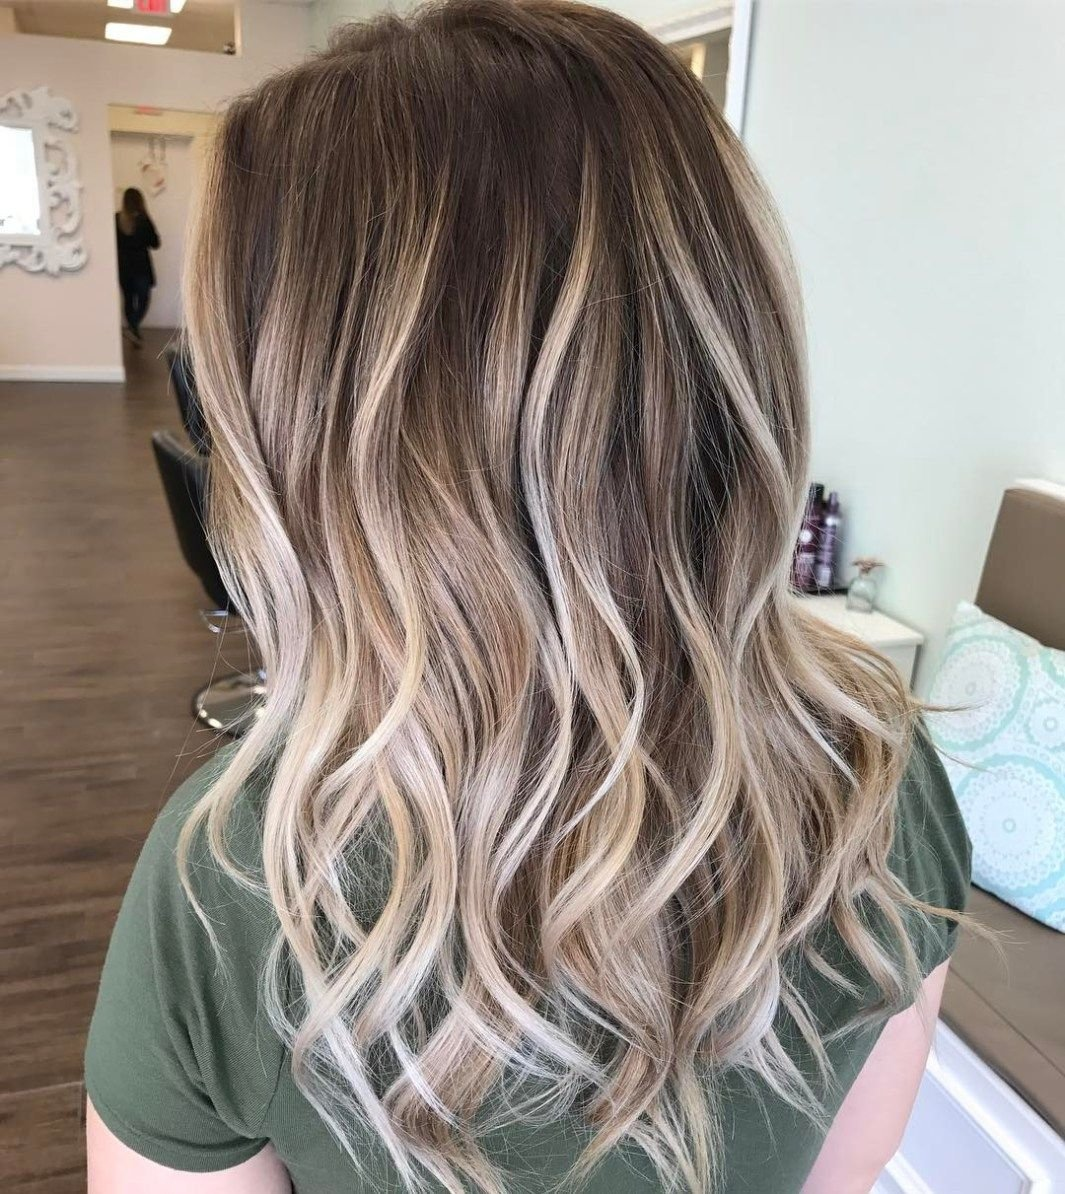 10 Perfect Blonde And Brown Hair Color Ideas best balayage hair color ideas 70 flattering styles for 2018 10 2020